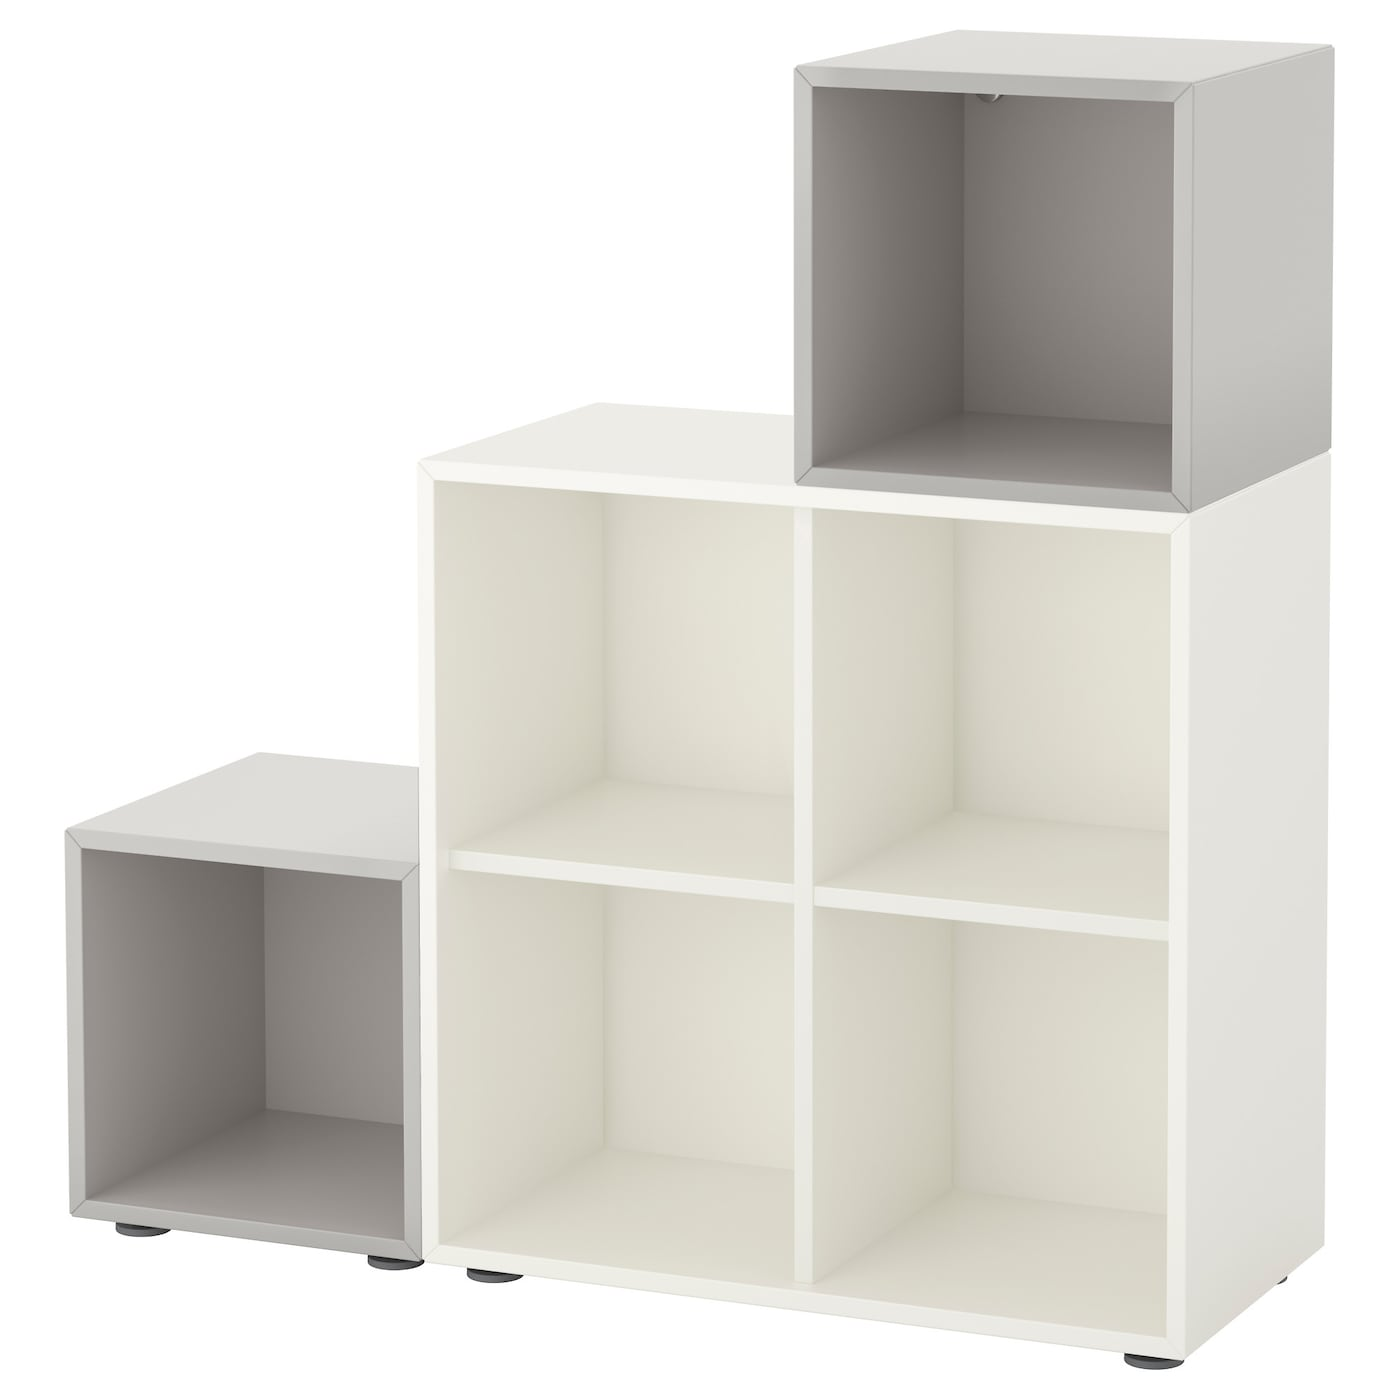 eket cabinet combination with feet white light grey 105 x 35 x 107 cm ikea. Black Bedroom Furniture Sets. Home Design Ideas